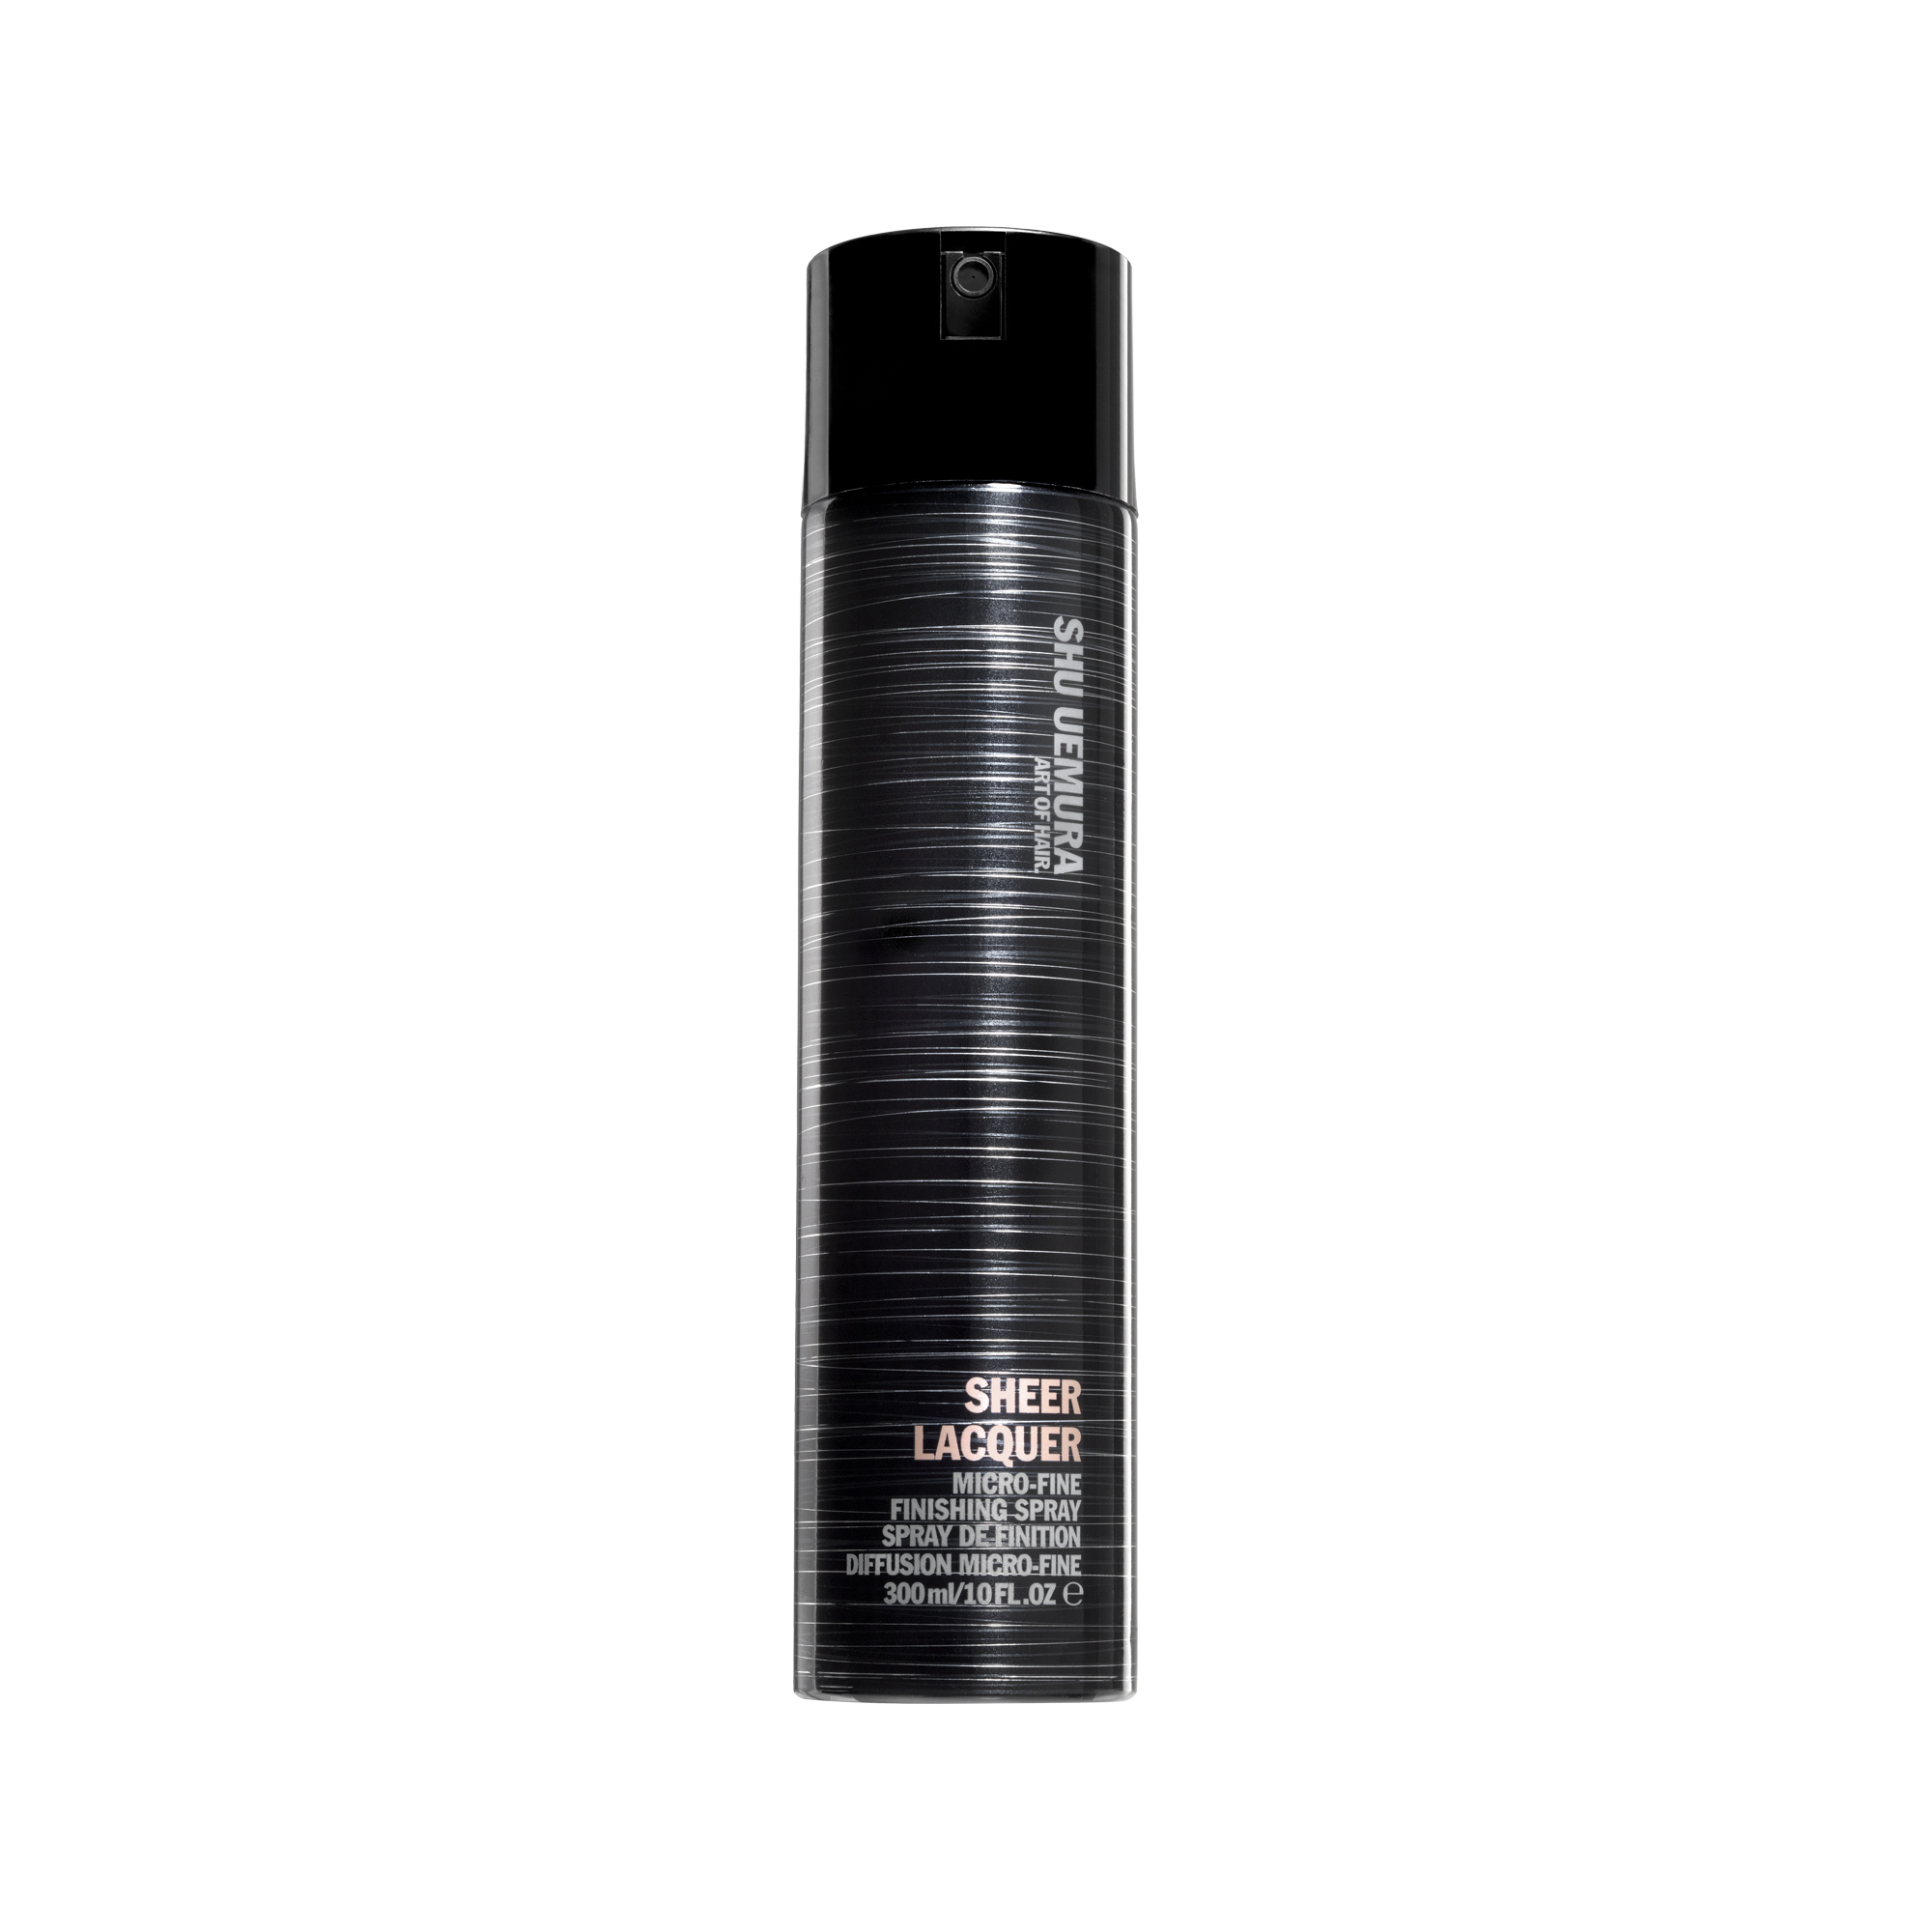 Sheer Laquer Micro-Fine Finishing Spray 300 ml